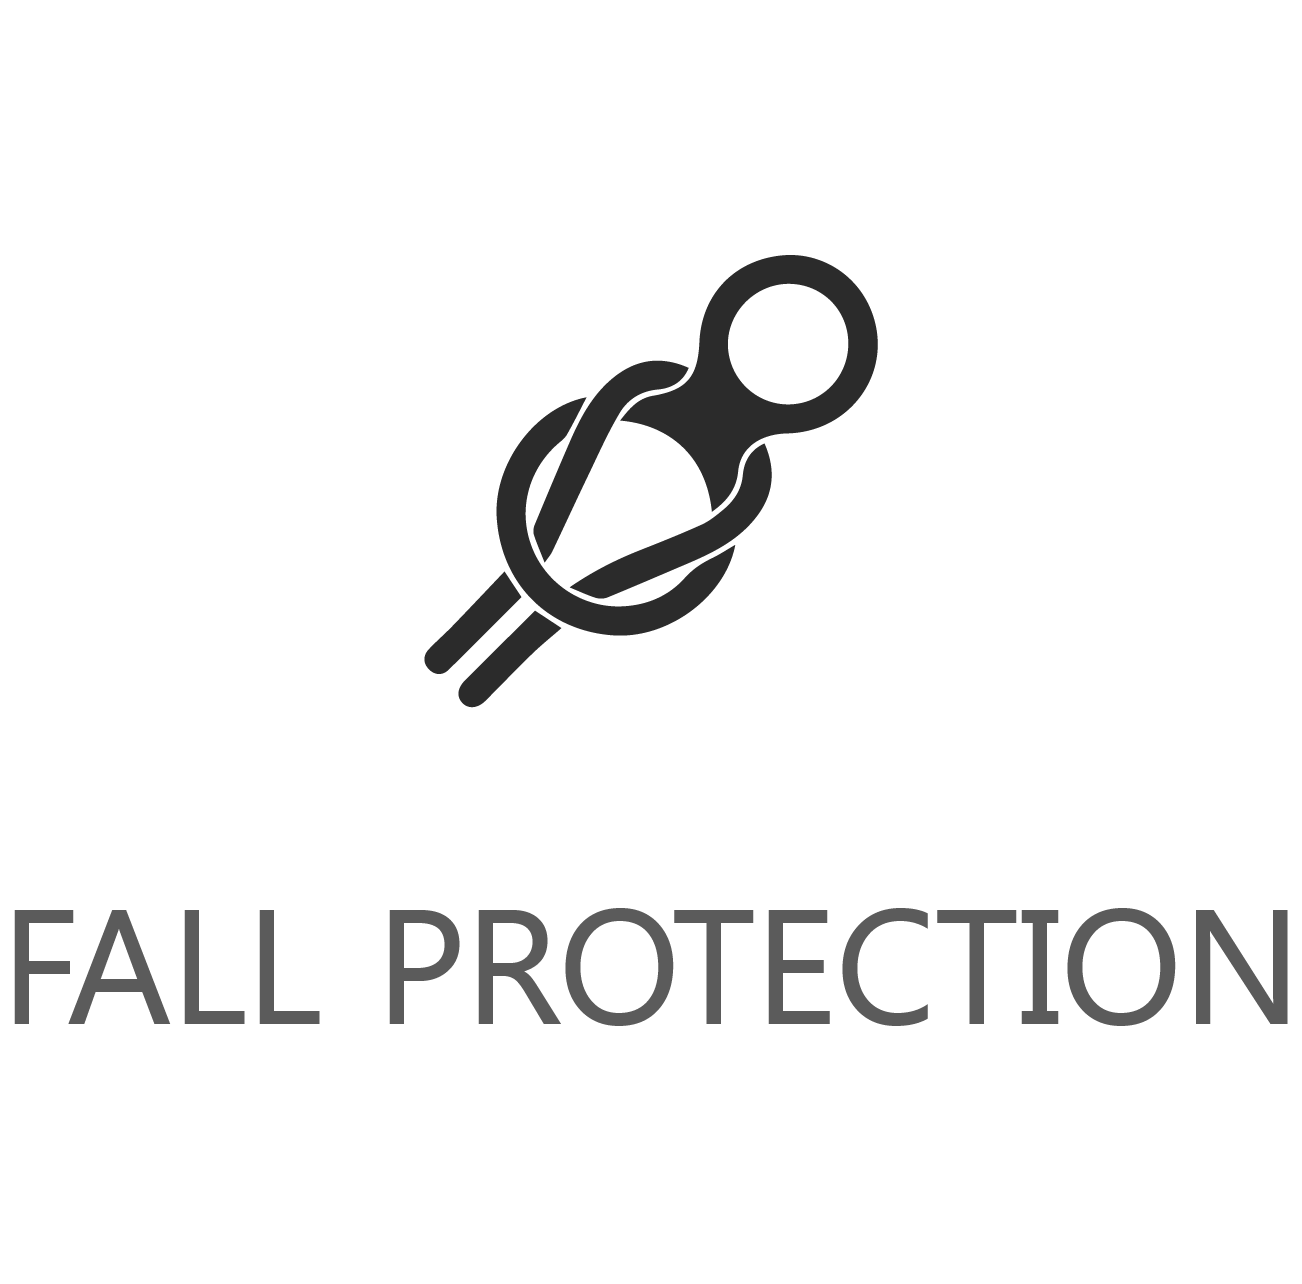 Fall Protection Unisys Engineering